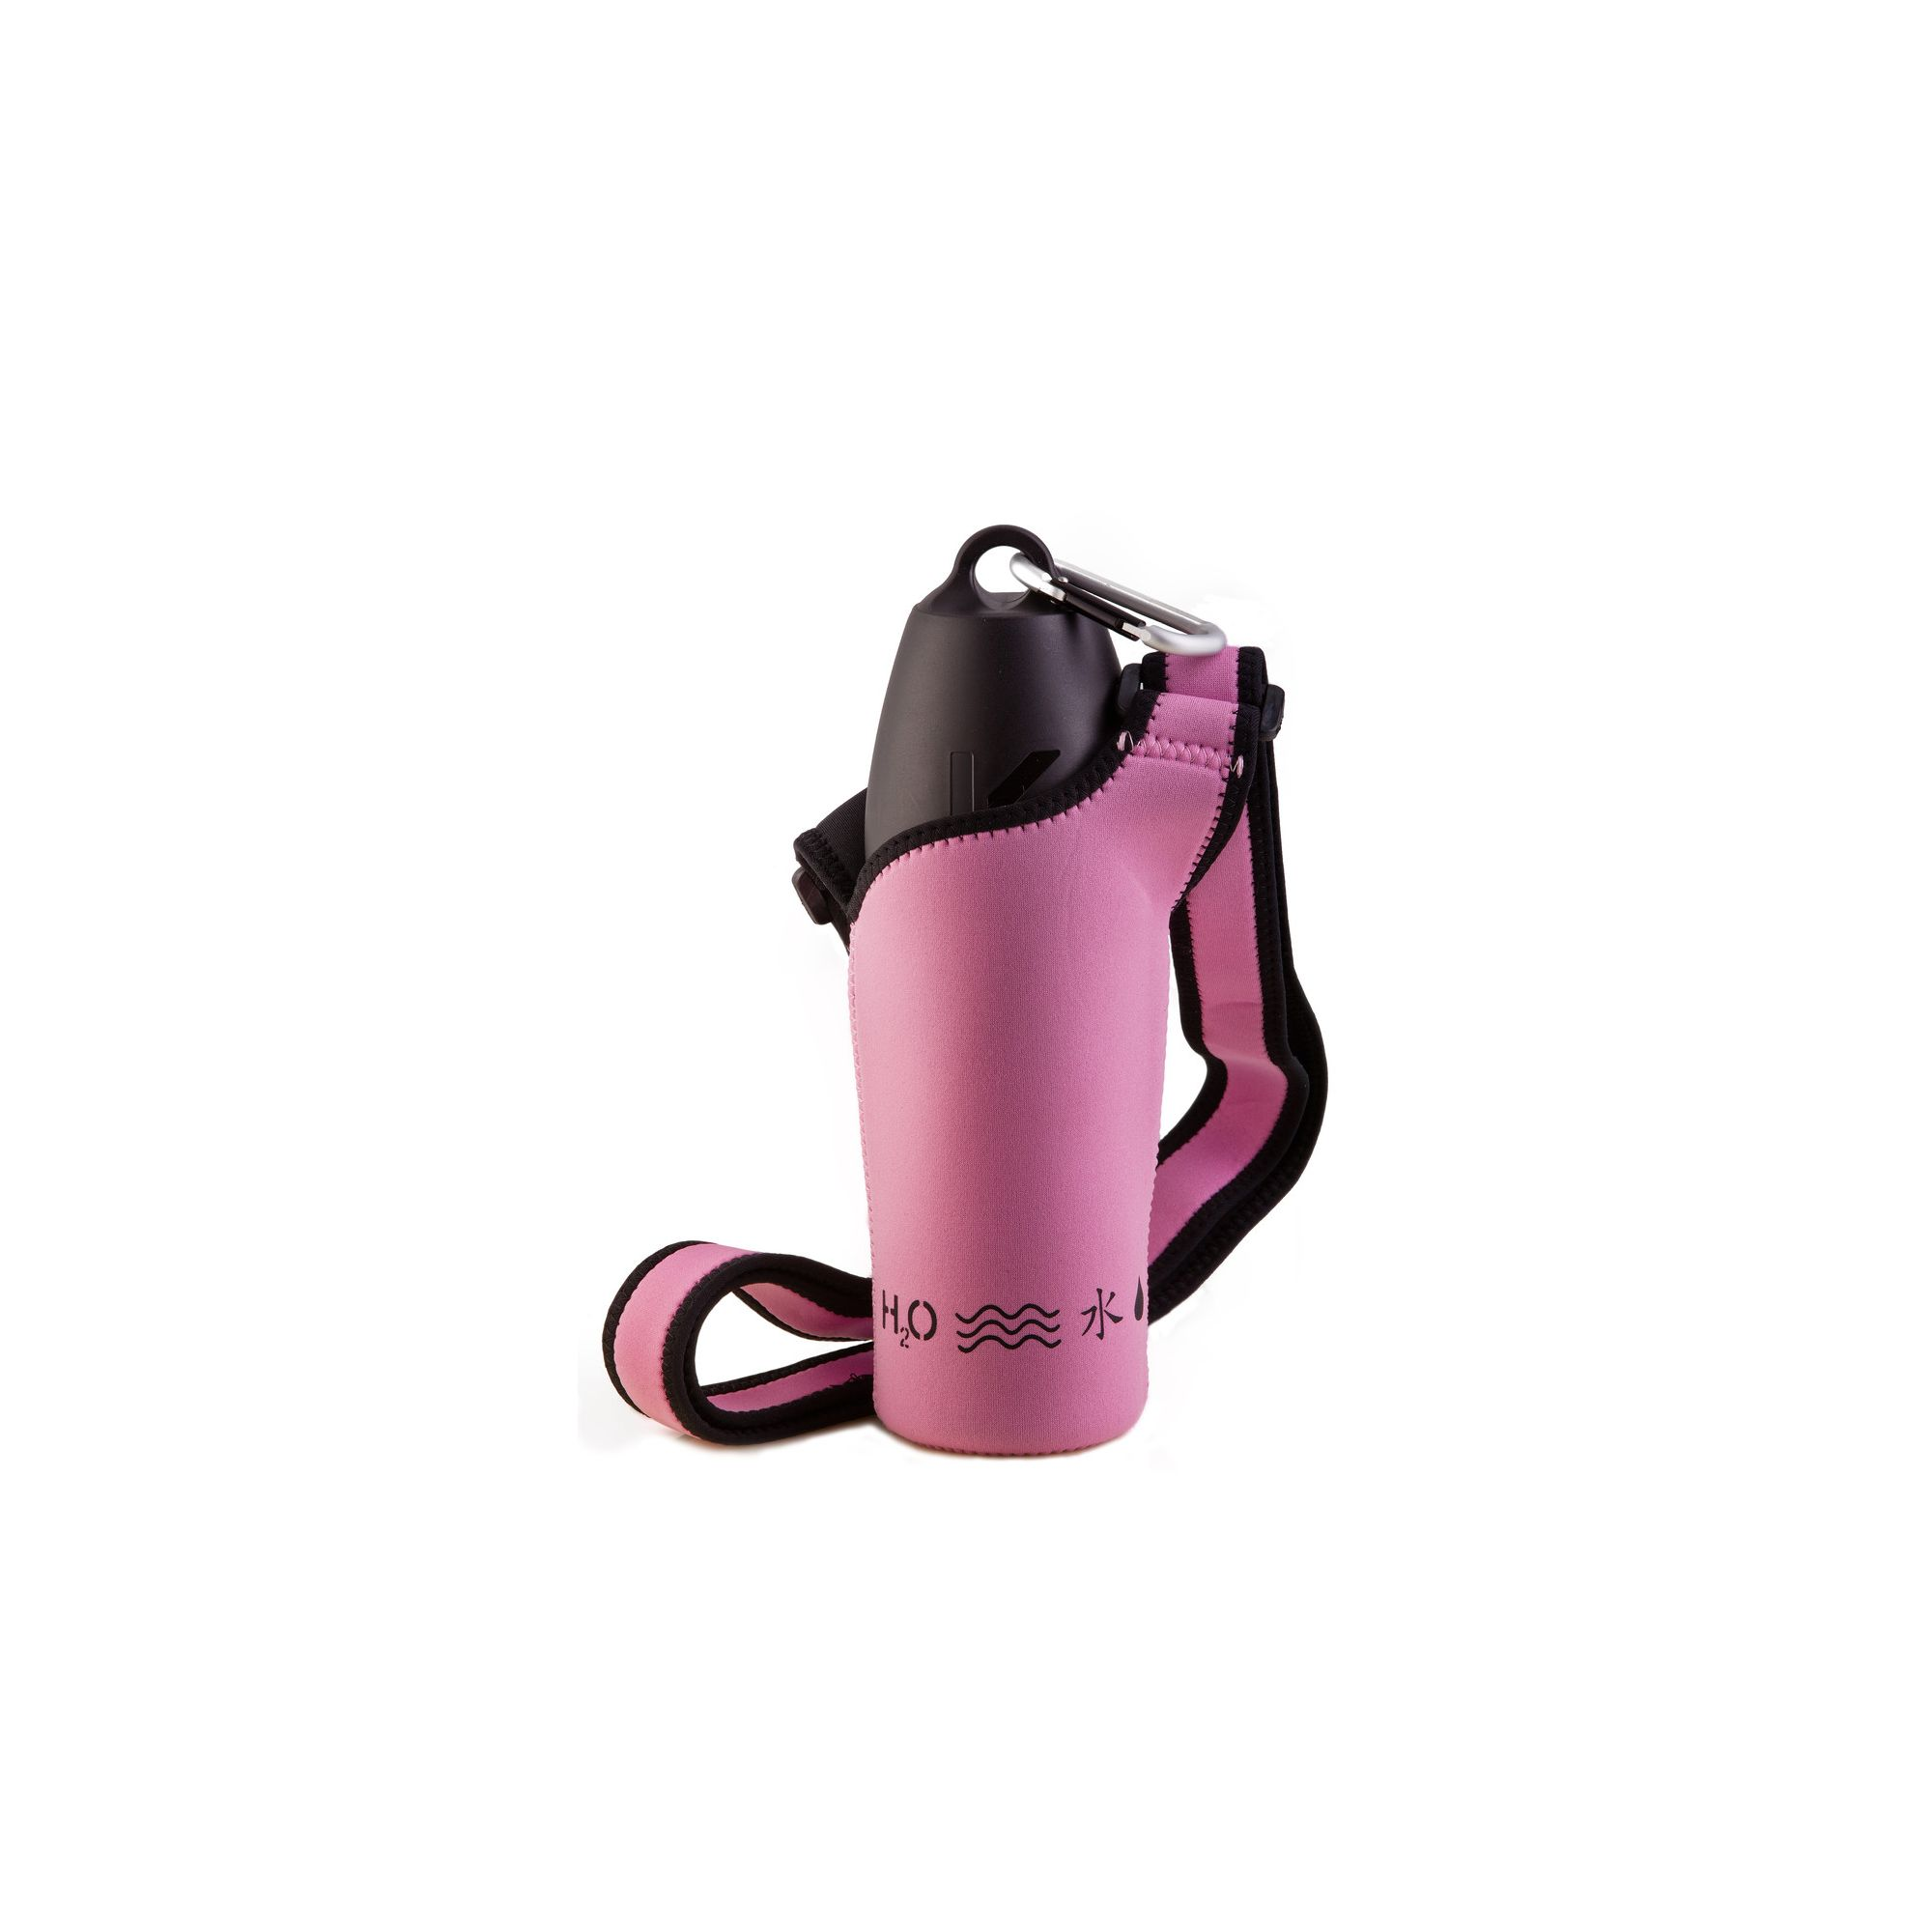 PJ Pet Products Neosling Adjustable Bottle Holder in Baby Pink